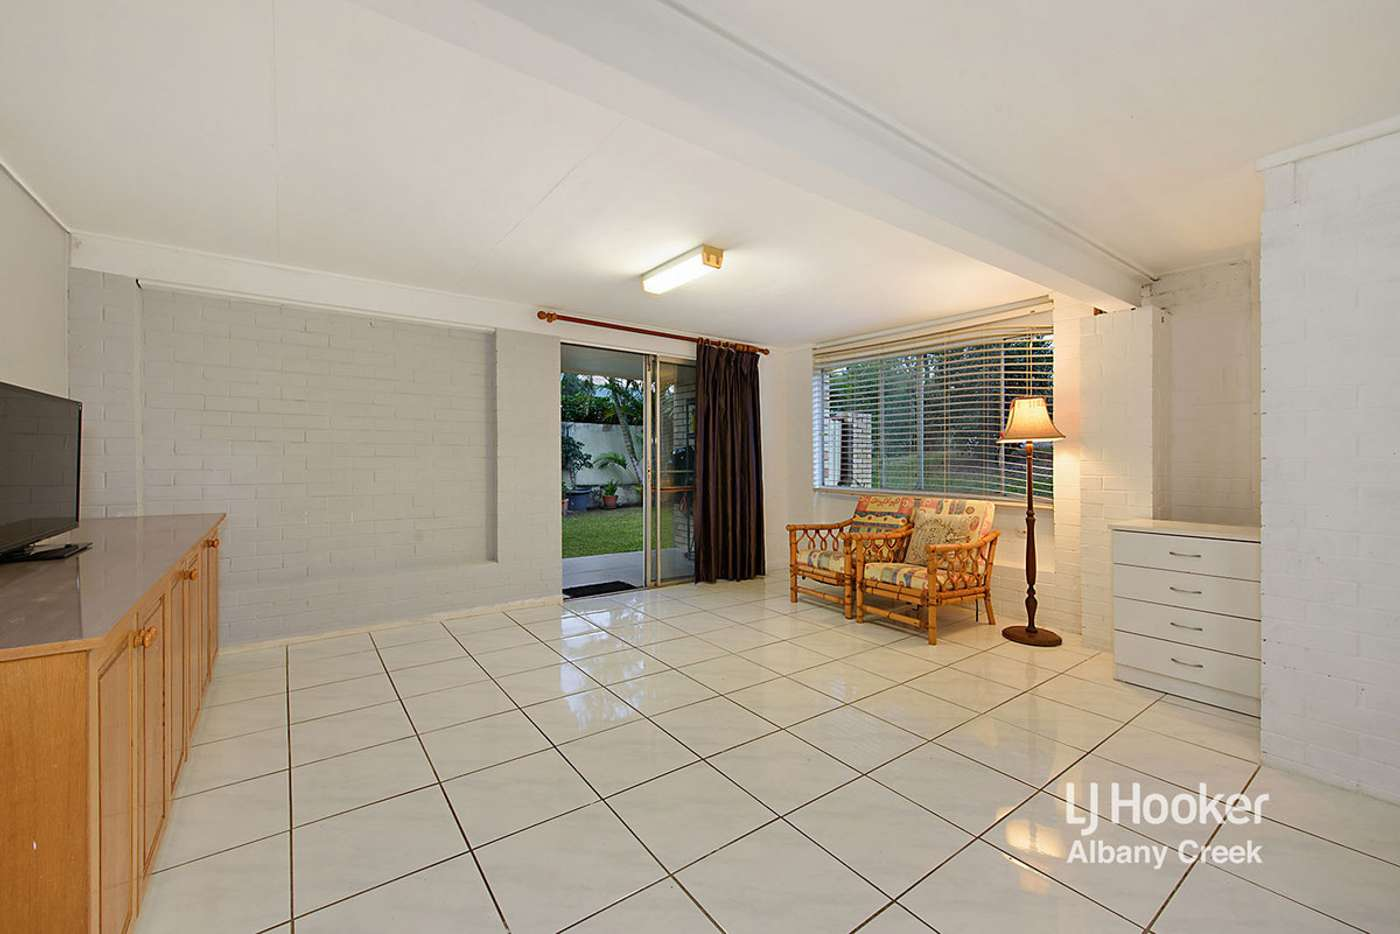 Sixth view of Homely house listing, 15 Sussex Drive, Albany Creek QLD 4035